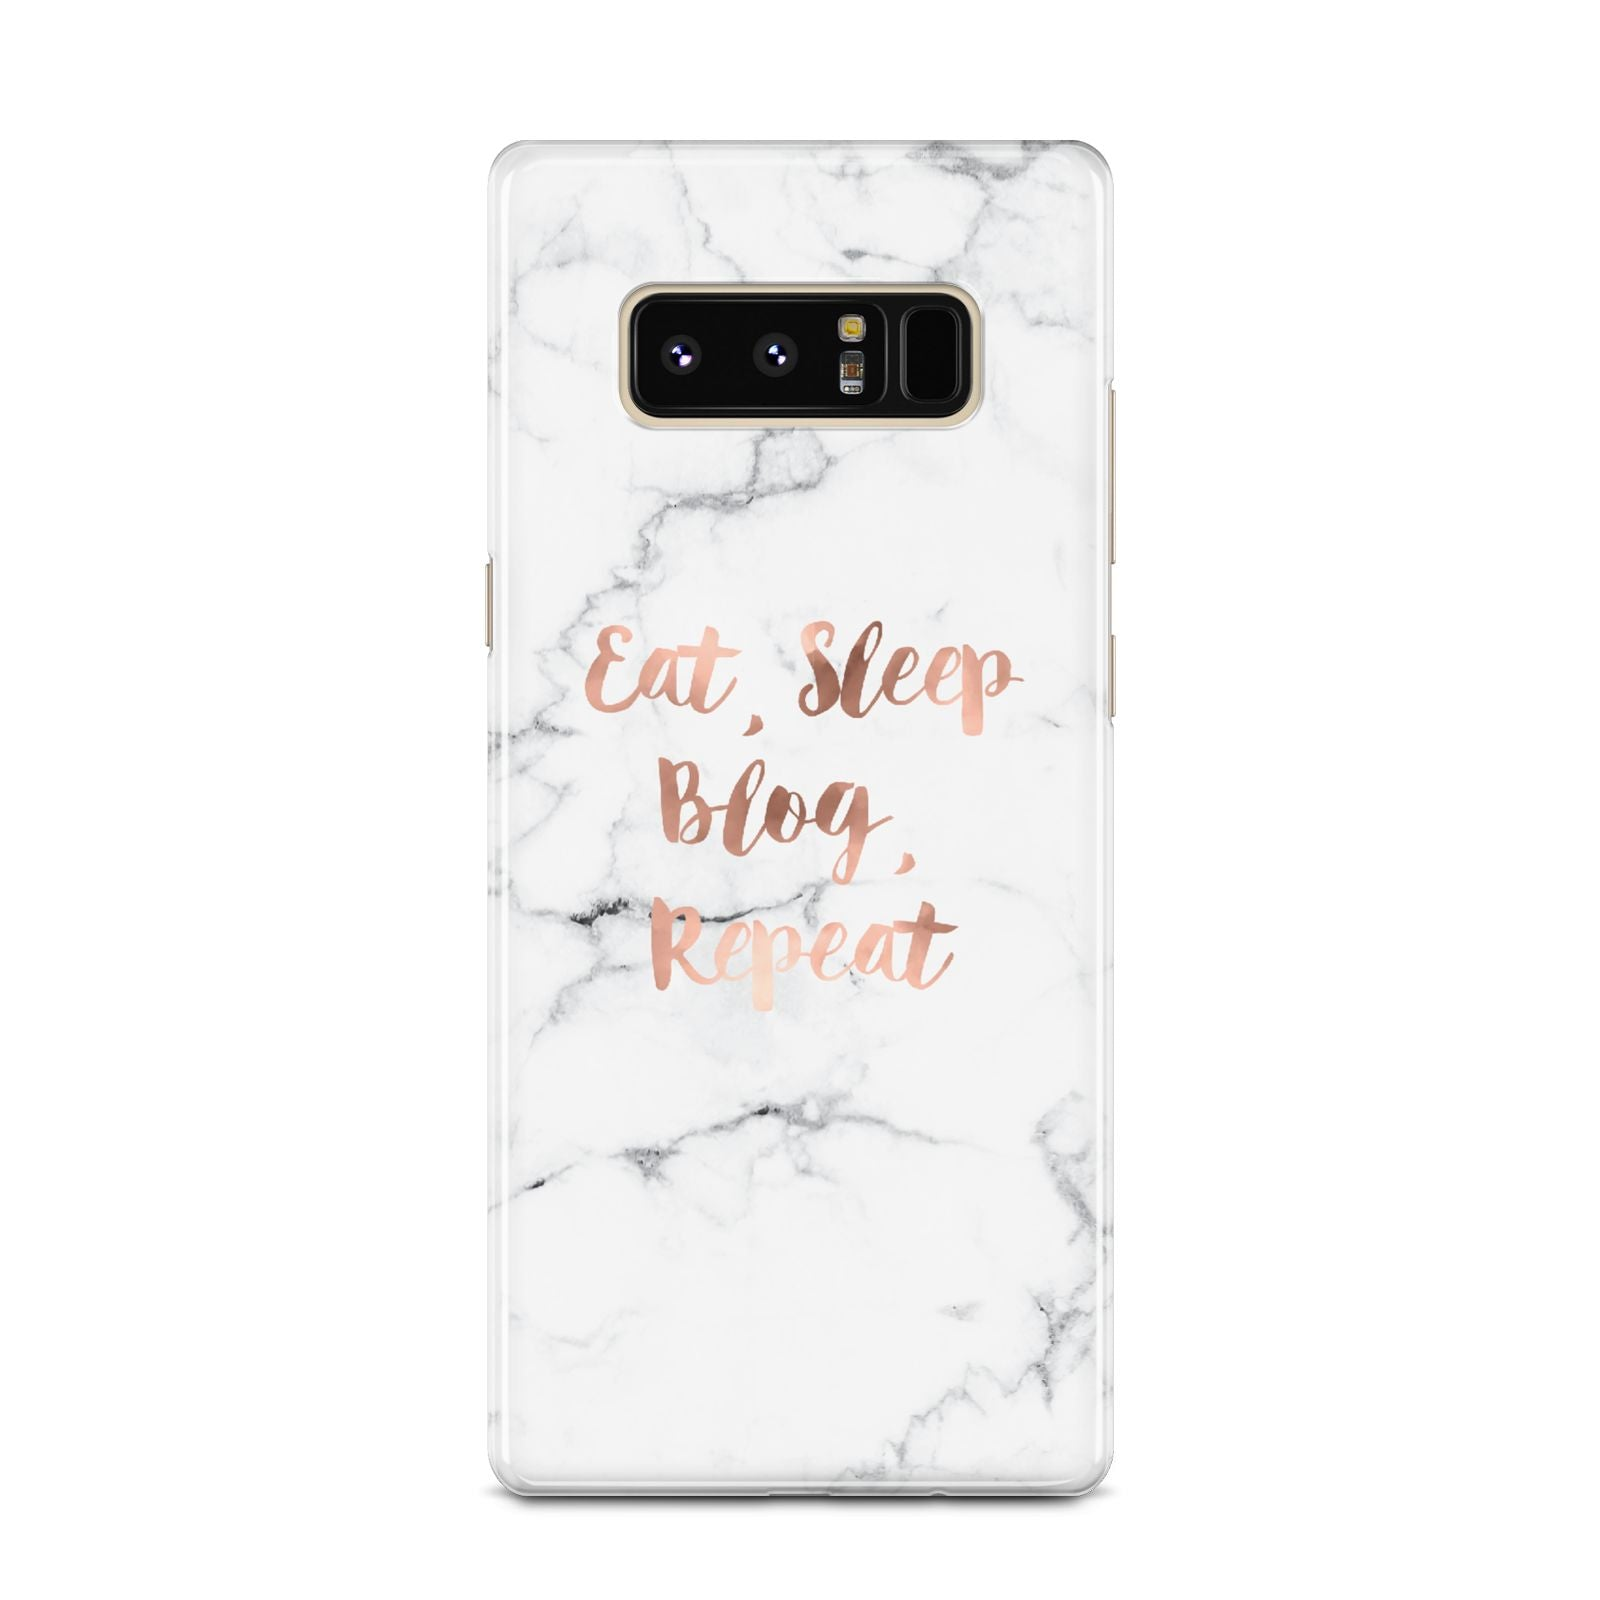 Eat Sleep Blog Repeat Marble Effect Samsung Galaxy Note 8 Case